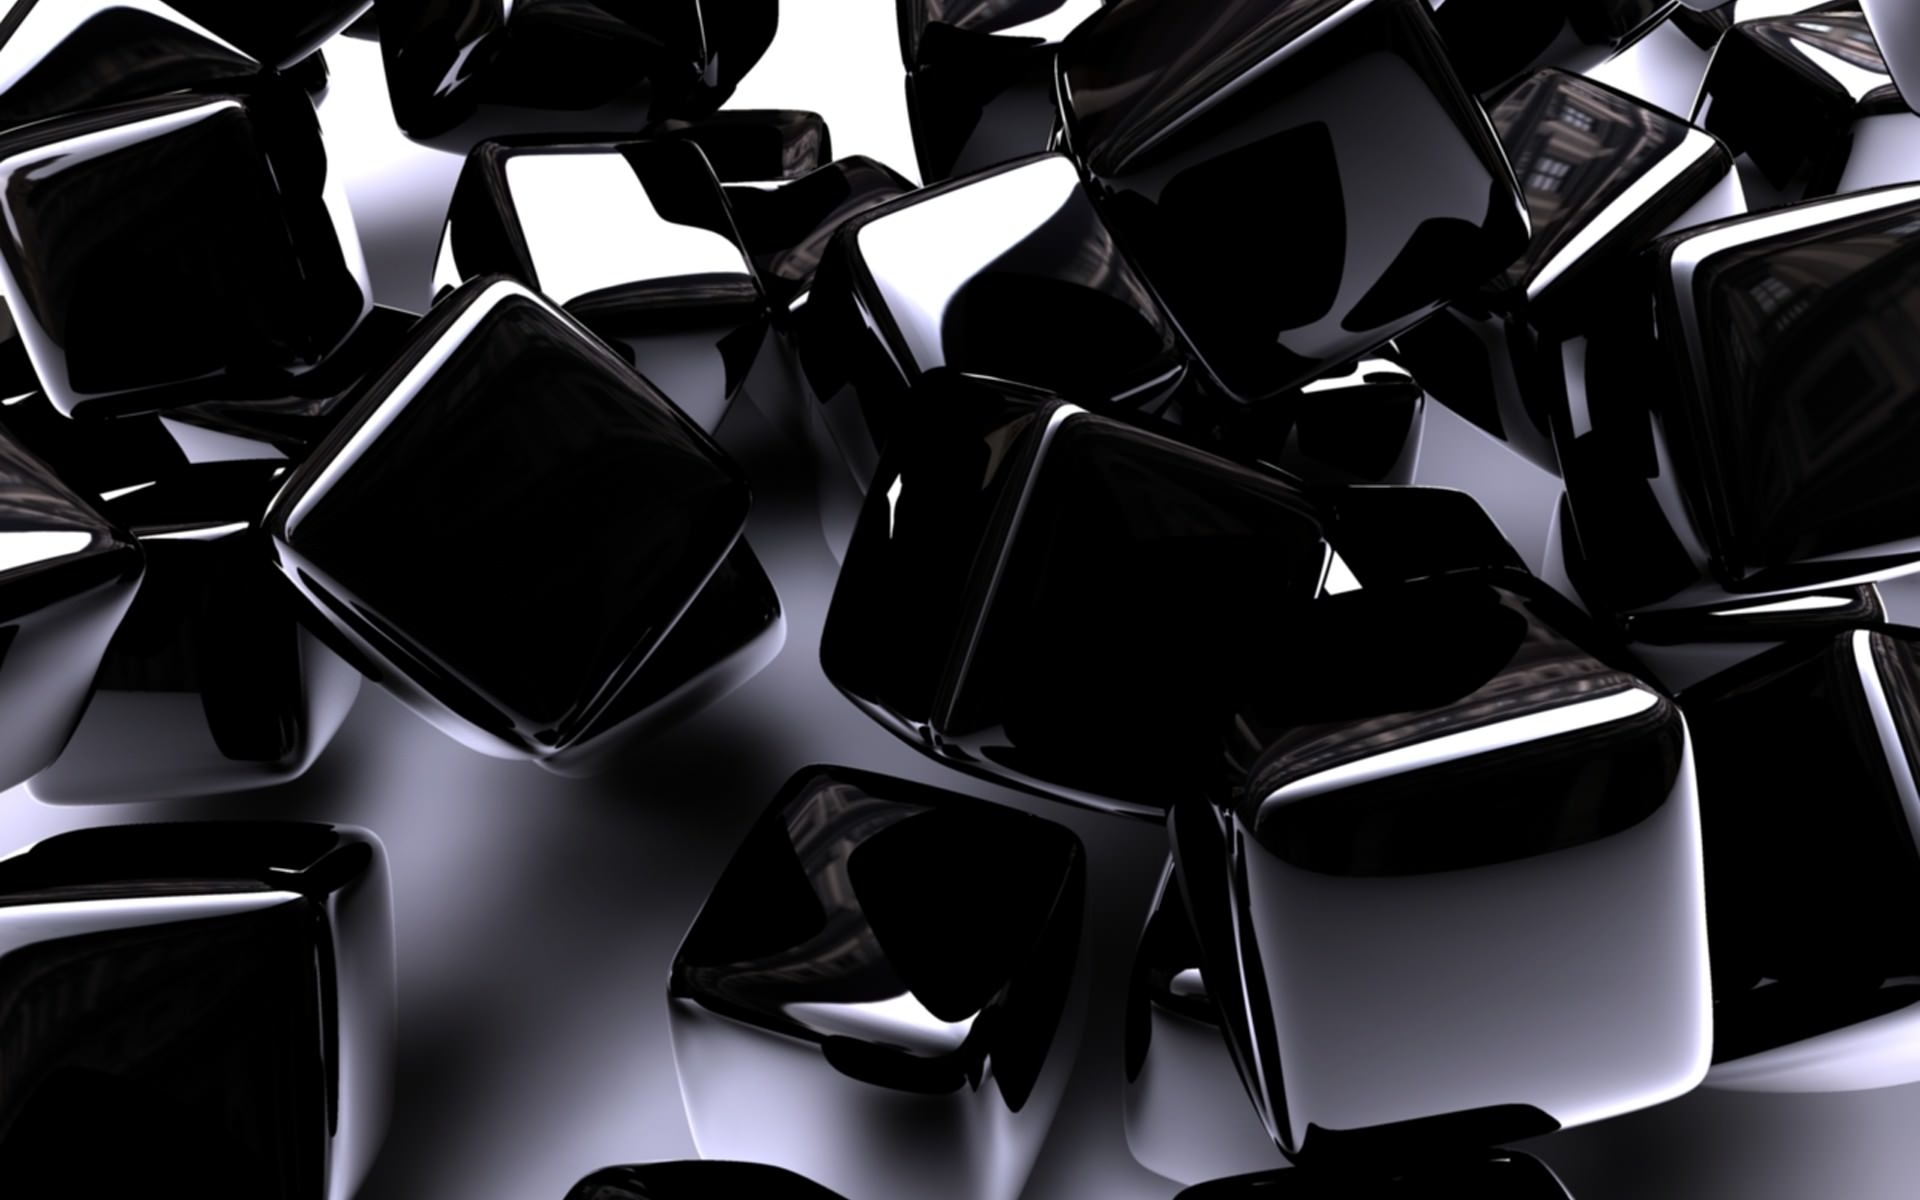 21 cube wallpapers backgrounds images freecreatives